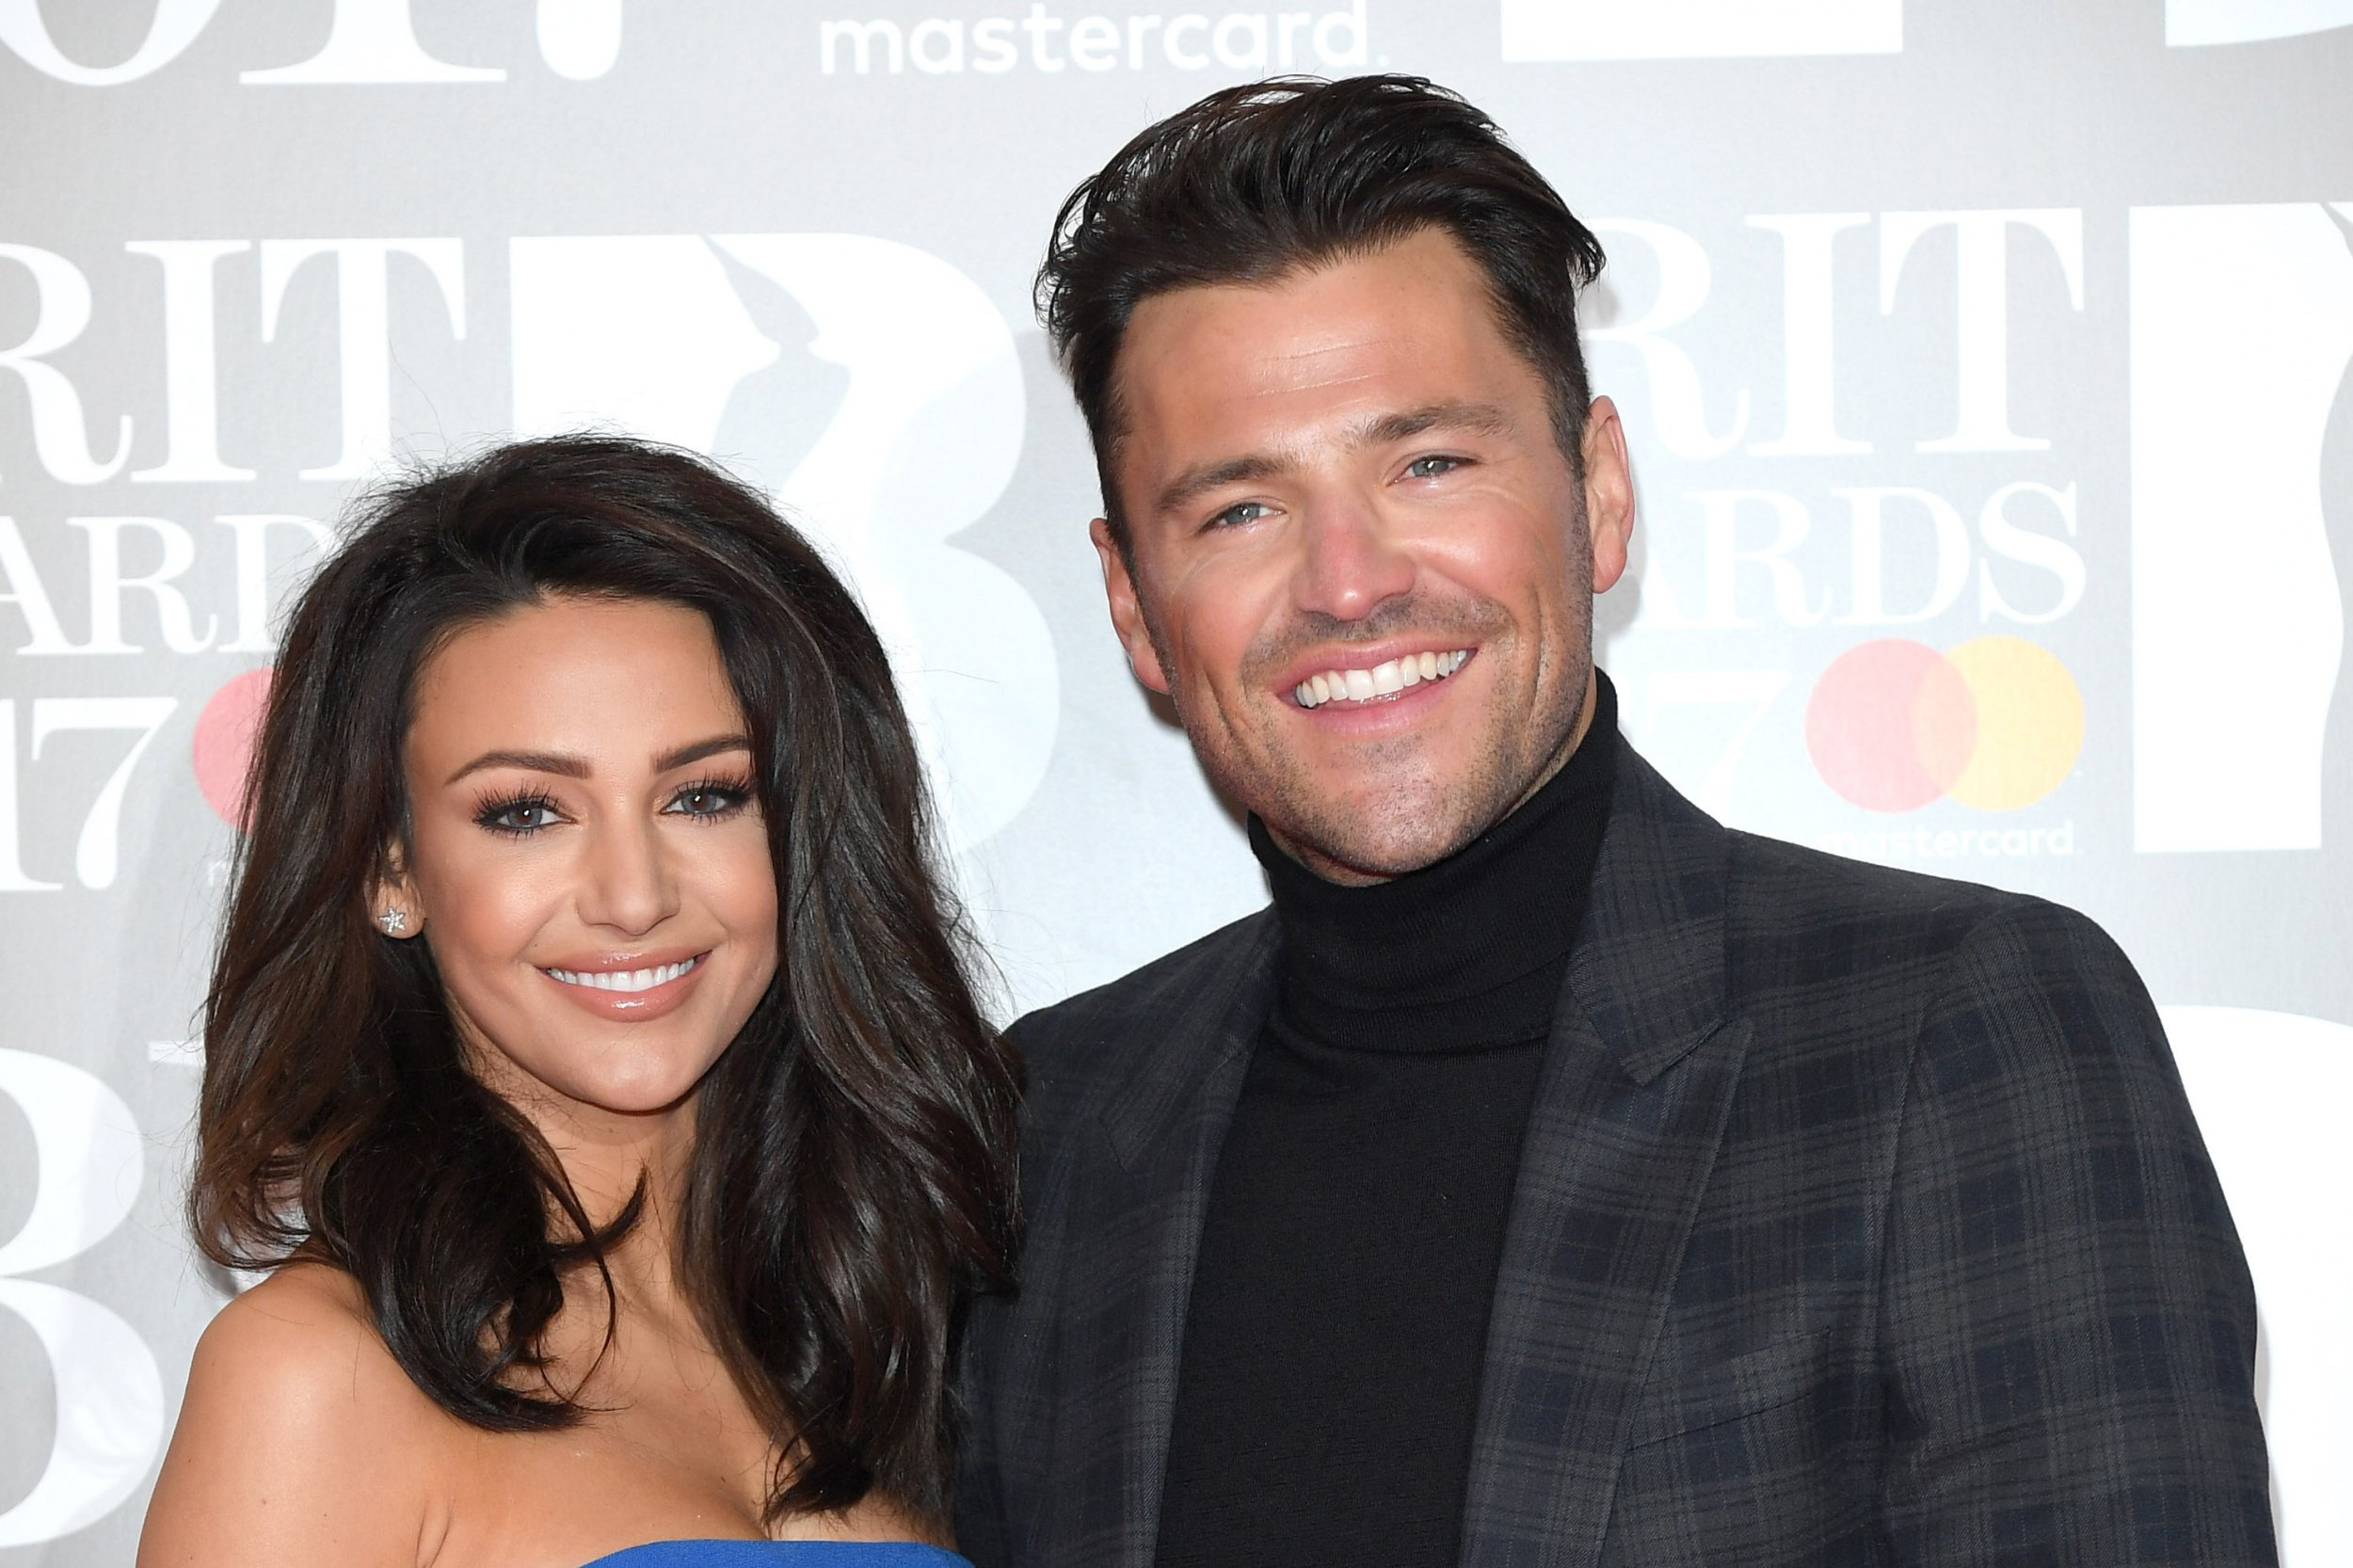 Mark Wright and Michelle Keegan have 'no plans for babies' as ex-Towie star moves back to UK